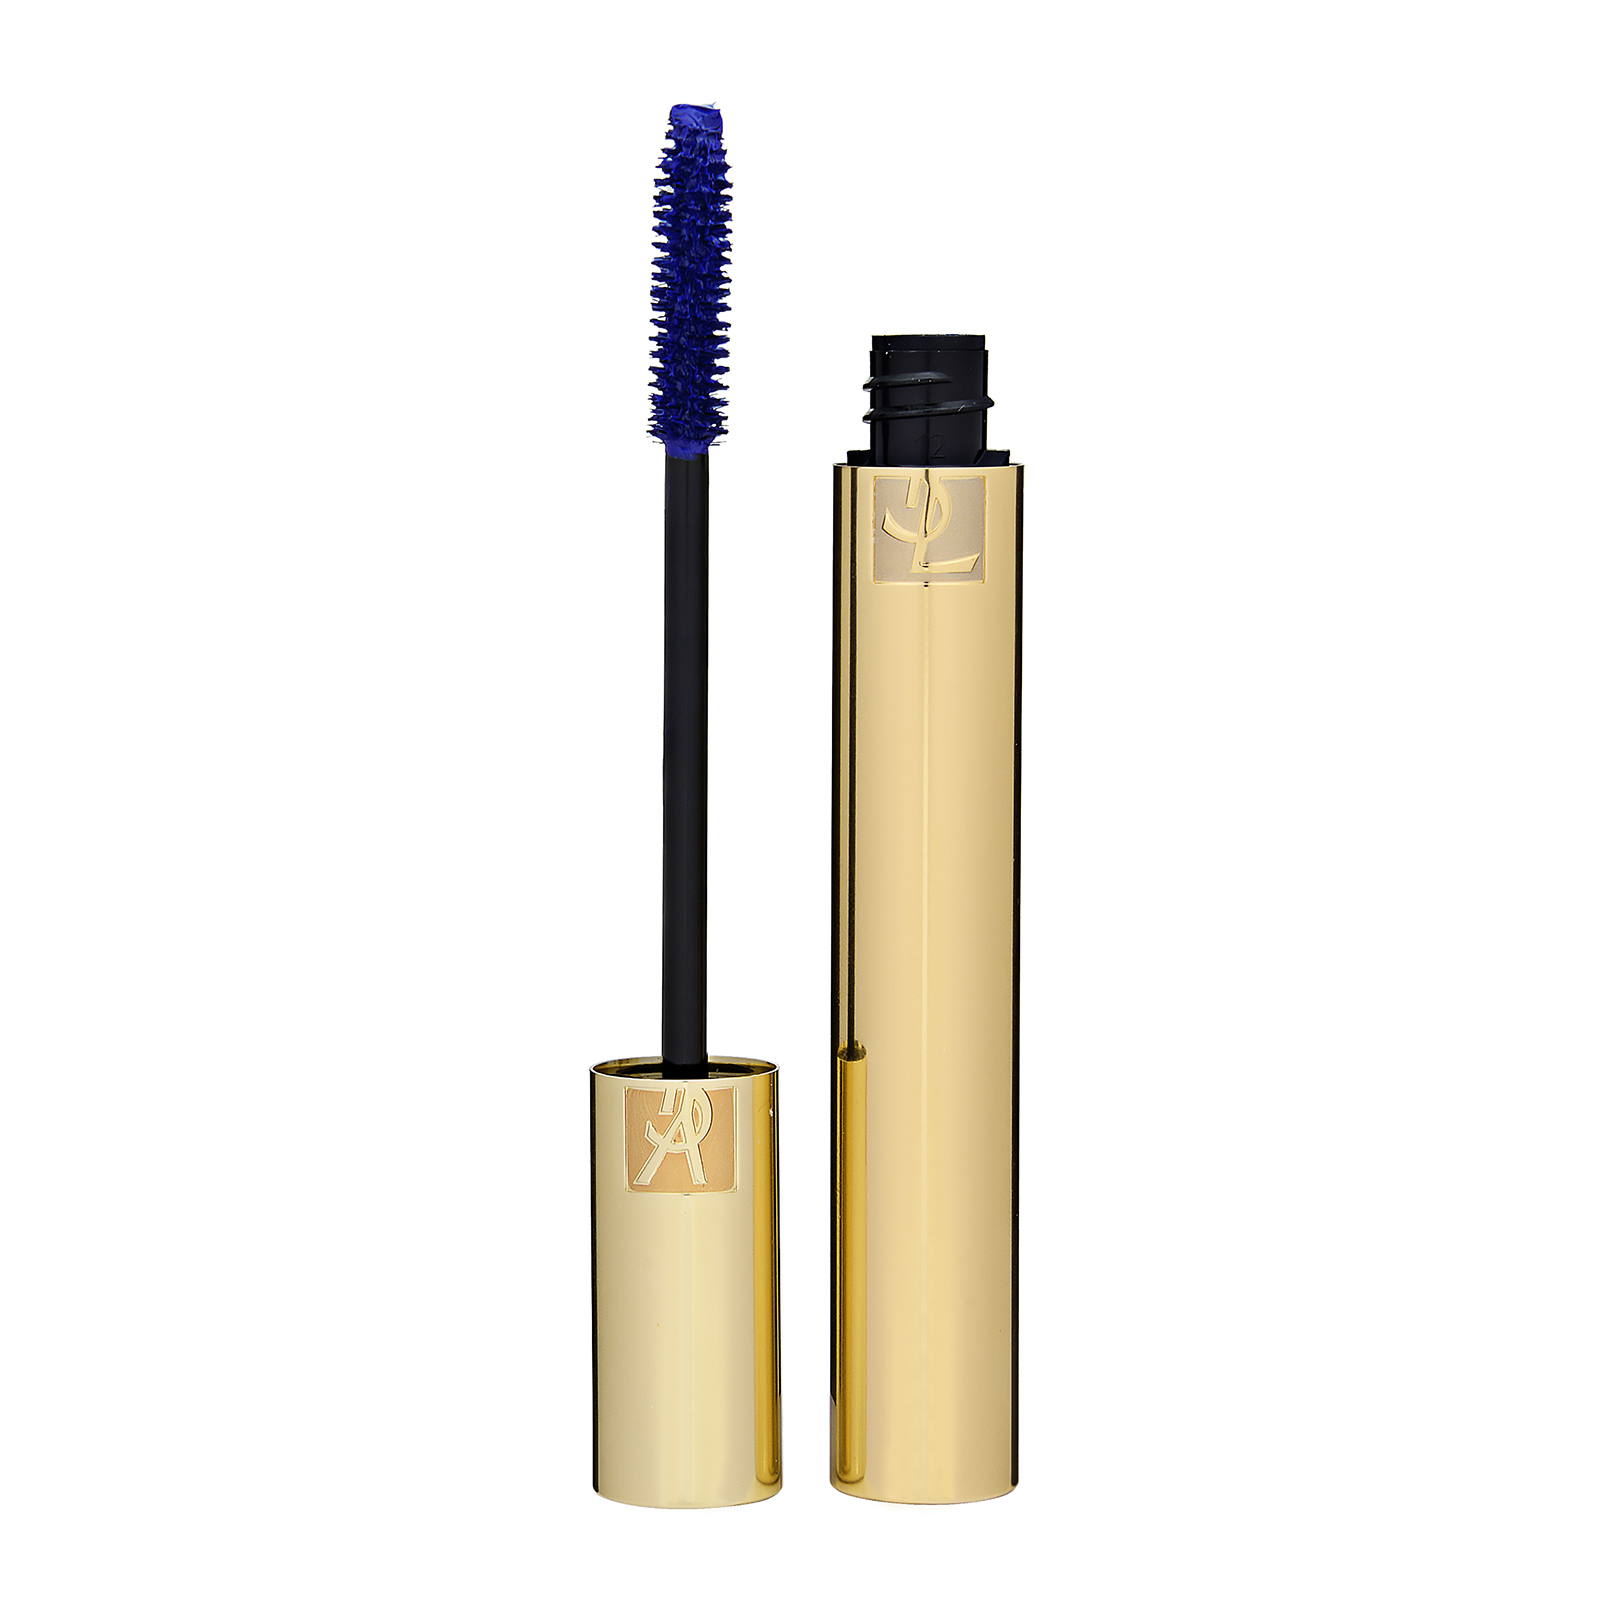 Yves Saint Laurent  Mascara Volume Effet Faux Cils Luxurious Mascara For A False Lash Effect 3 Extreme Blue, 0.2oz, 7.5ml